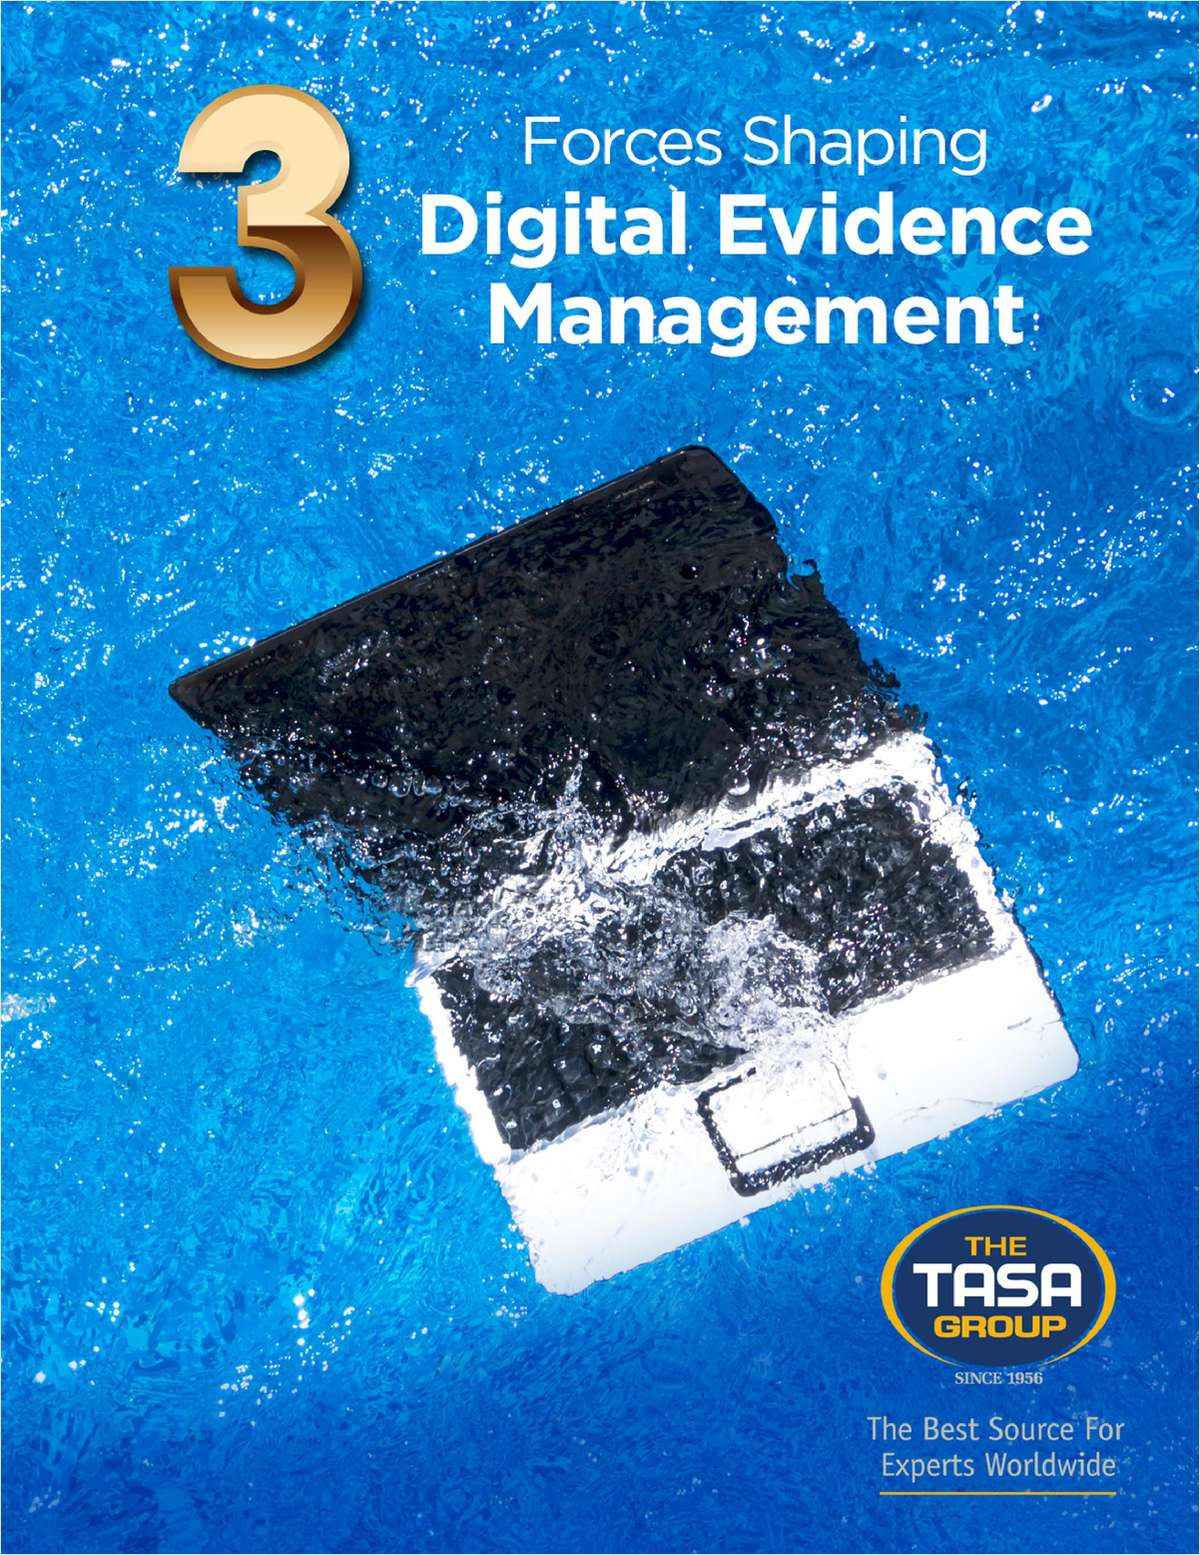 3 Forces Shaping Digital Evidence Management